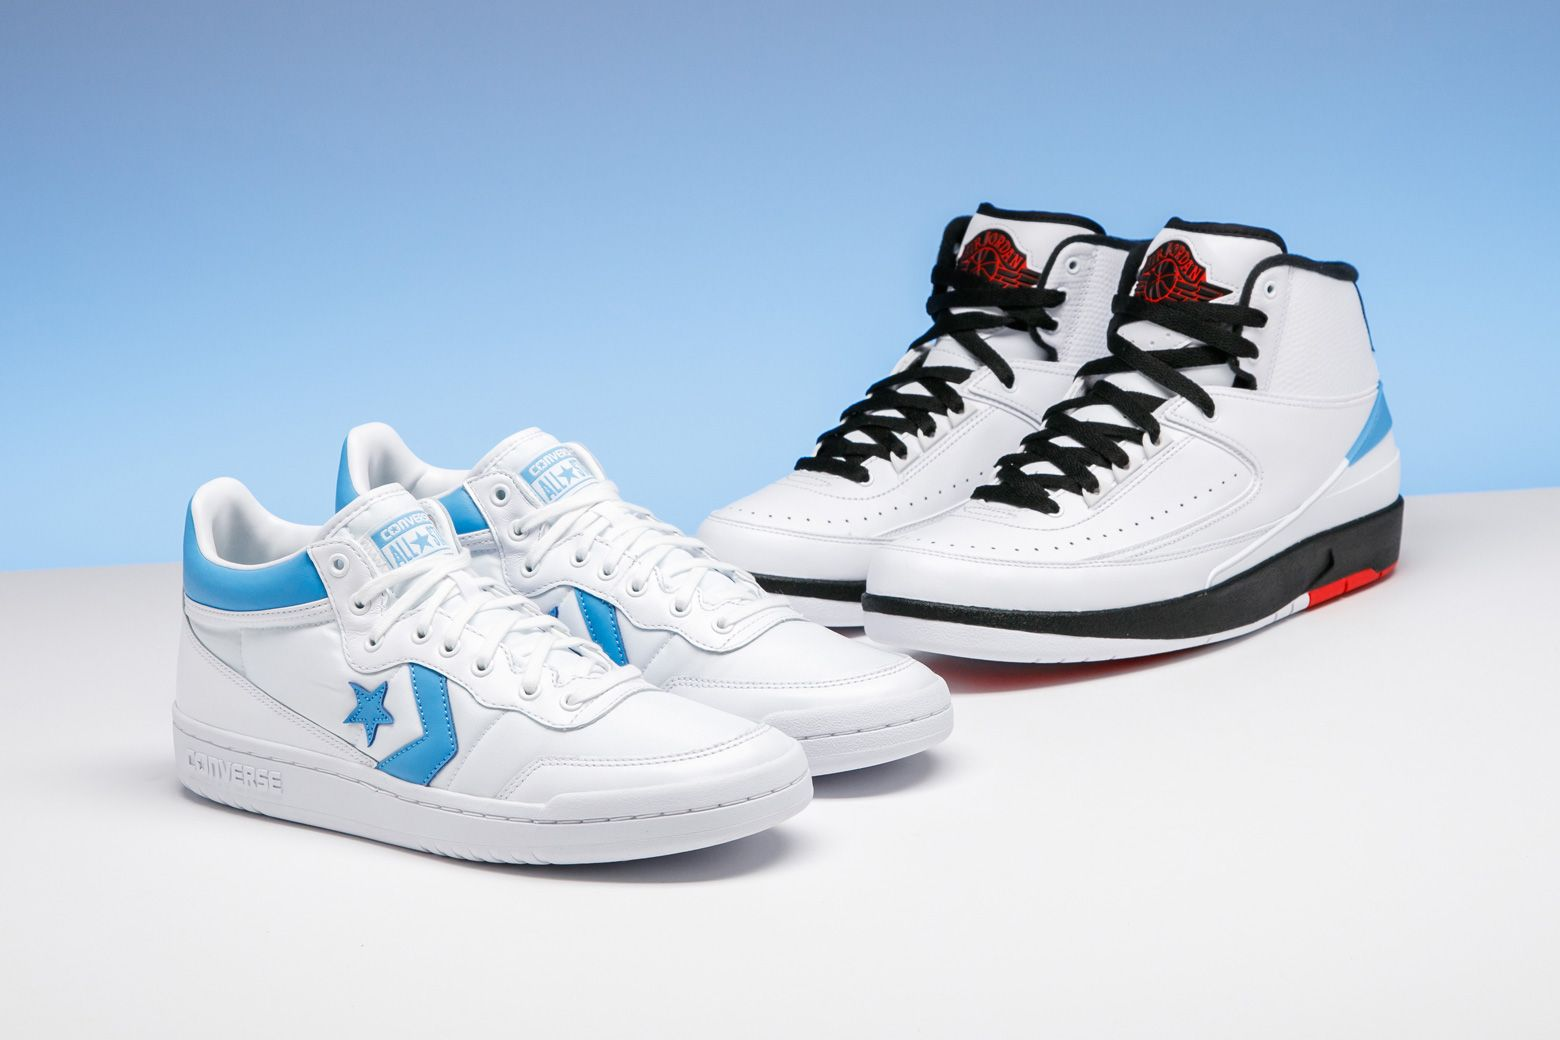 info for 18f41 d713b EARLY ACCESS  Jordan x Converse Pack. Available NOW for retail! Limited  quantities.